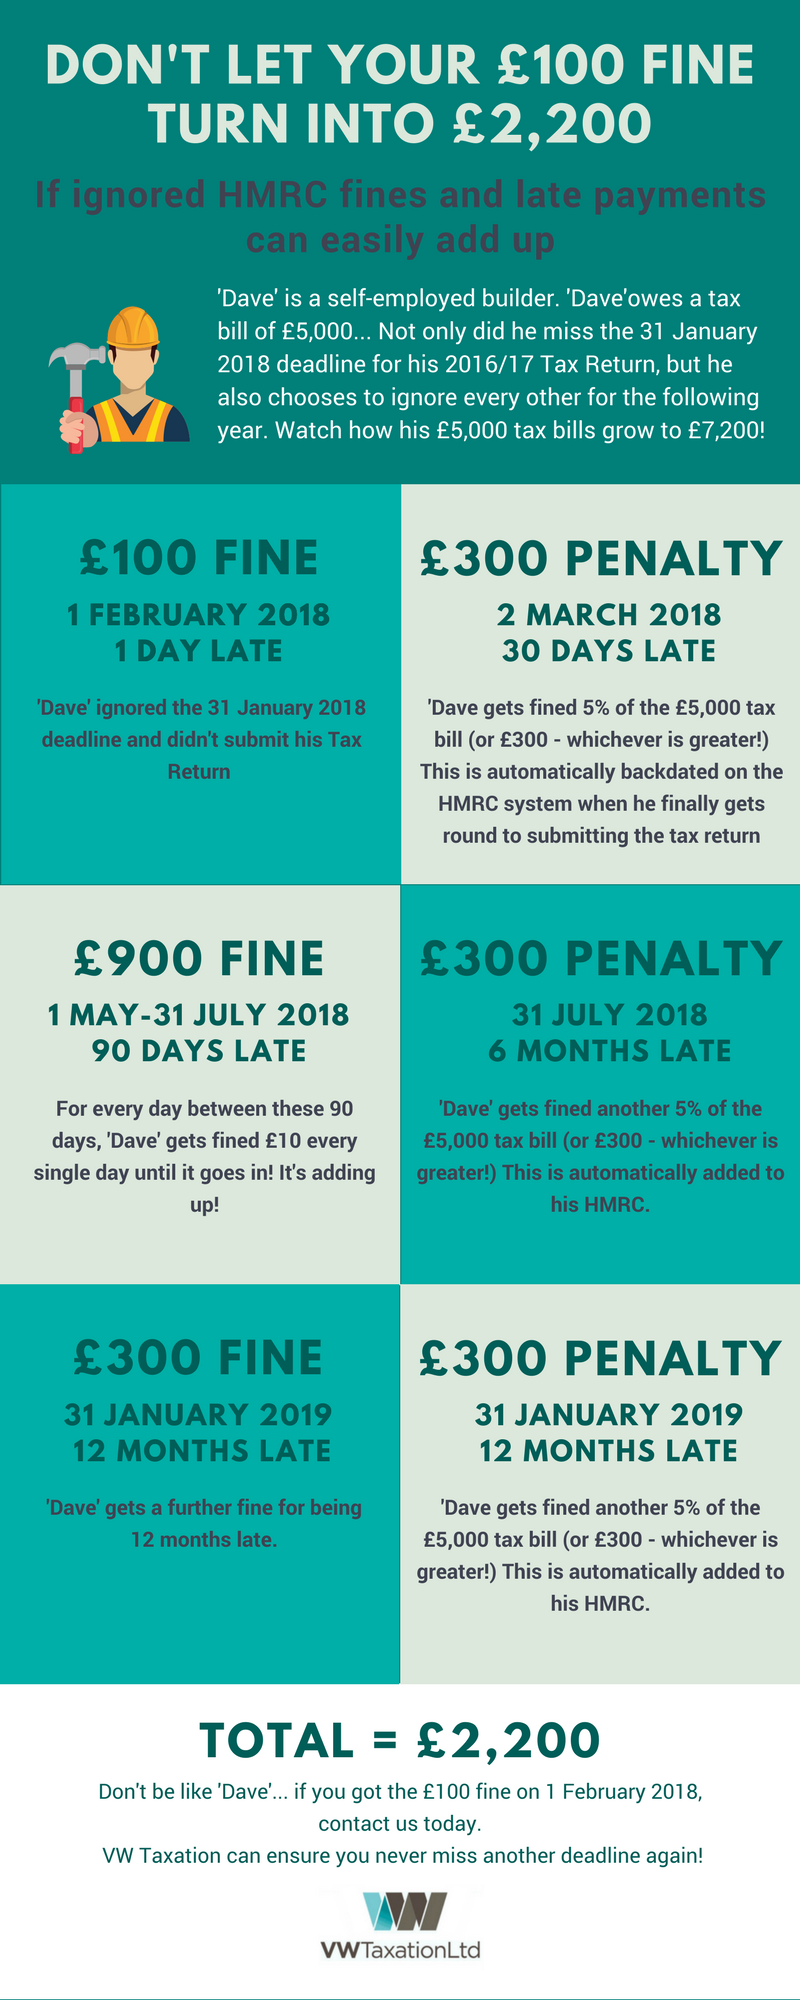 HMRC Fines and Late Payments